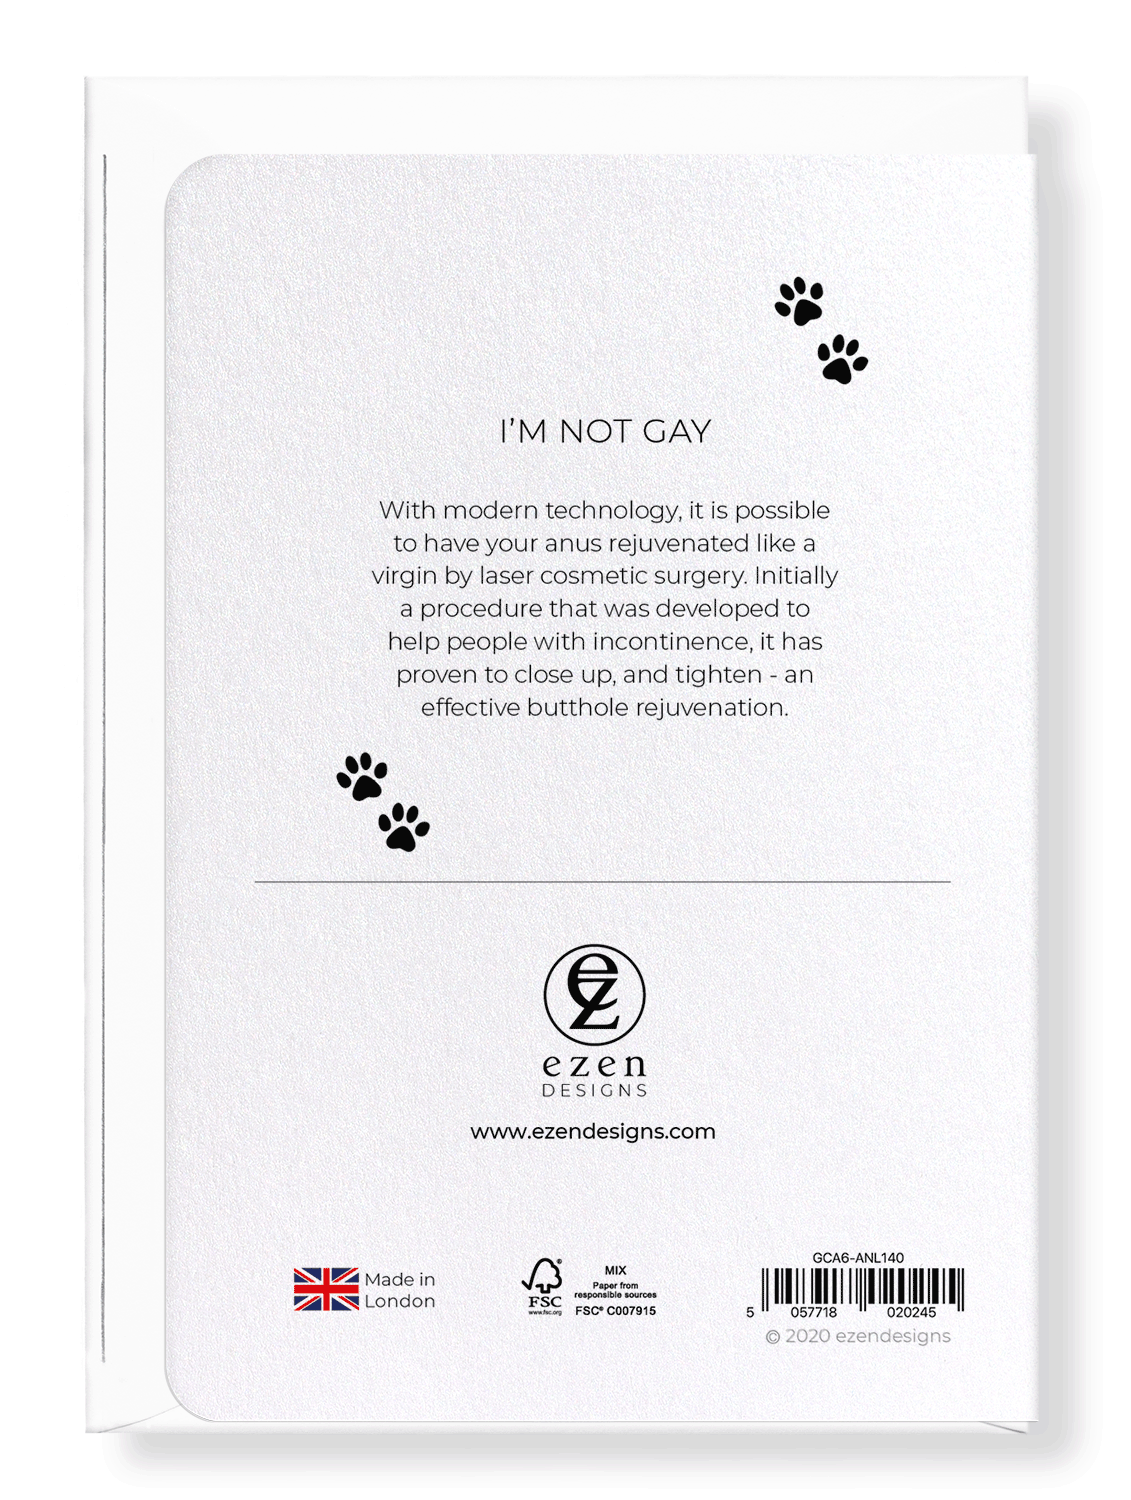 Ezen Designs - I'm not gay - Greeting Card - Back